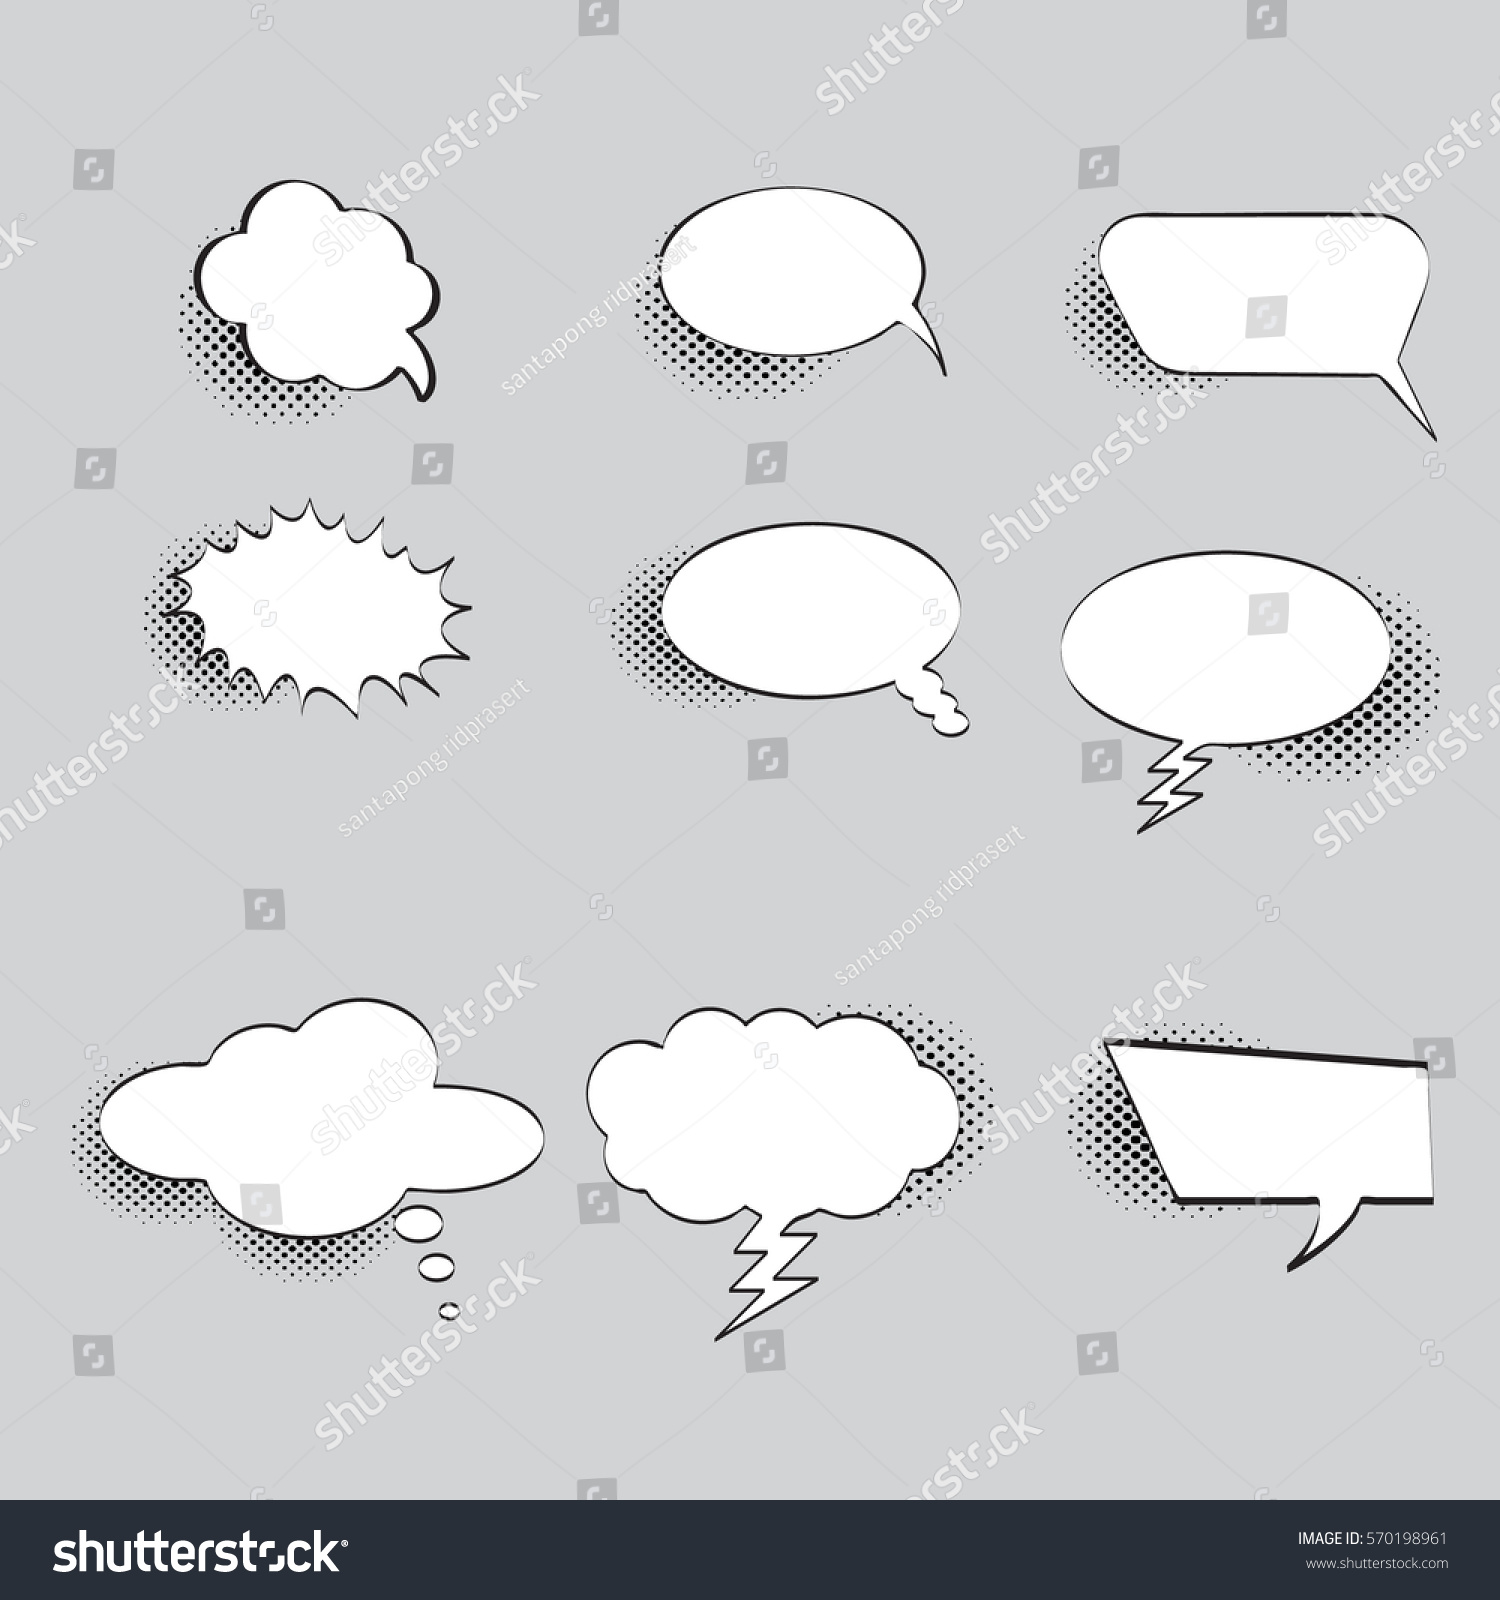 Fantastic Bubble Thought Template Pictures Inspiration - Example ...